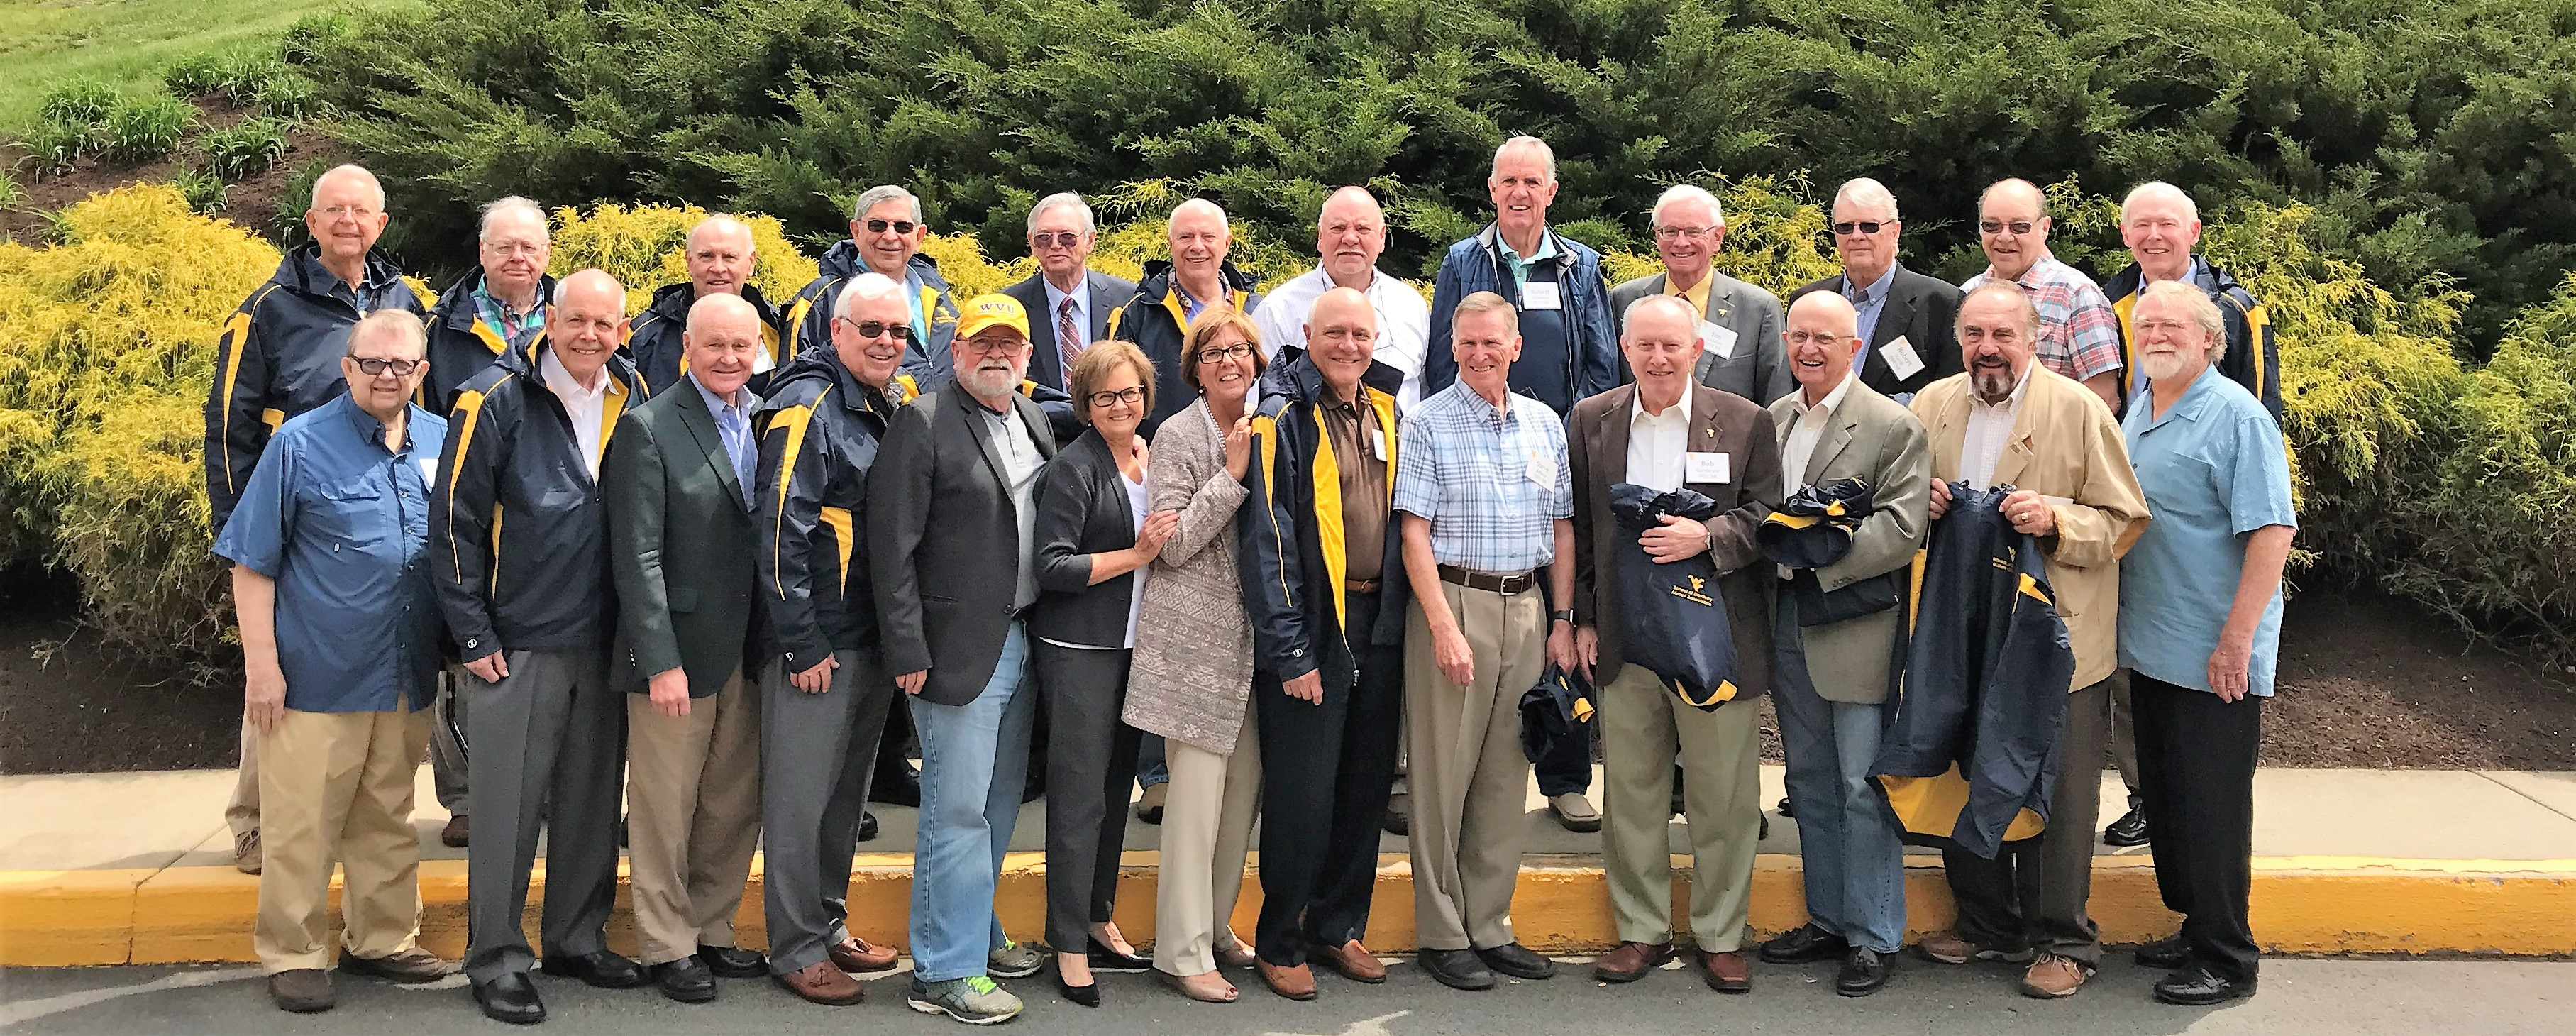 The DDS Class of 2018 gather for their 50th reunion.